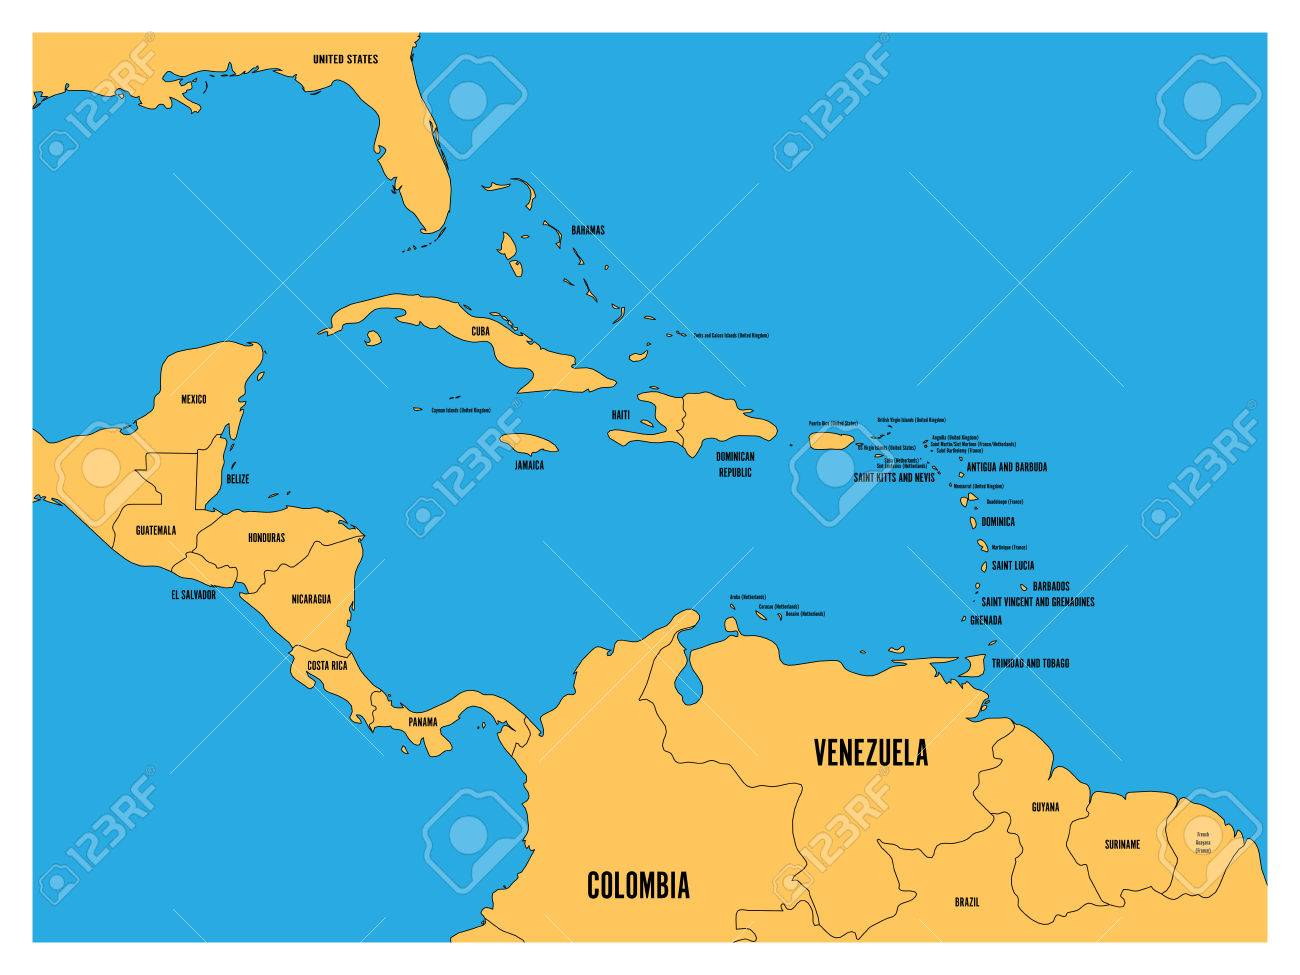 Central america and carribean states political map yellow land central america and carribean states political map yellow land with black country names labels on gumiabroncs Images